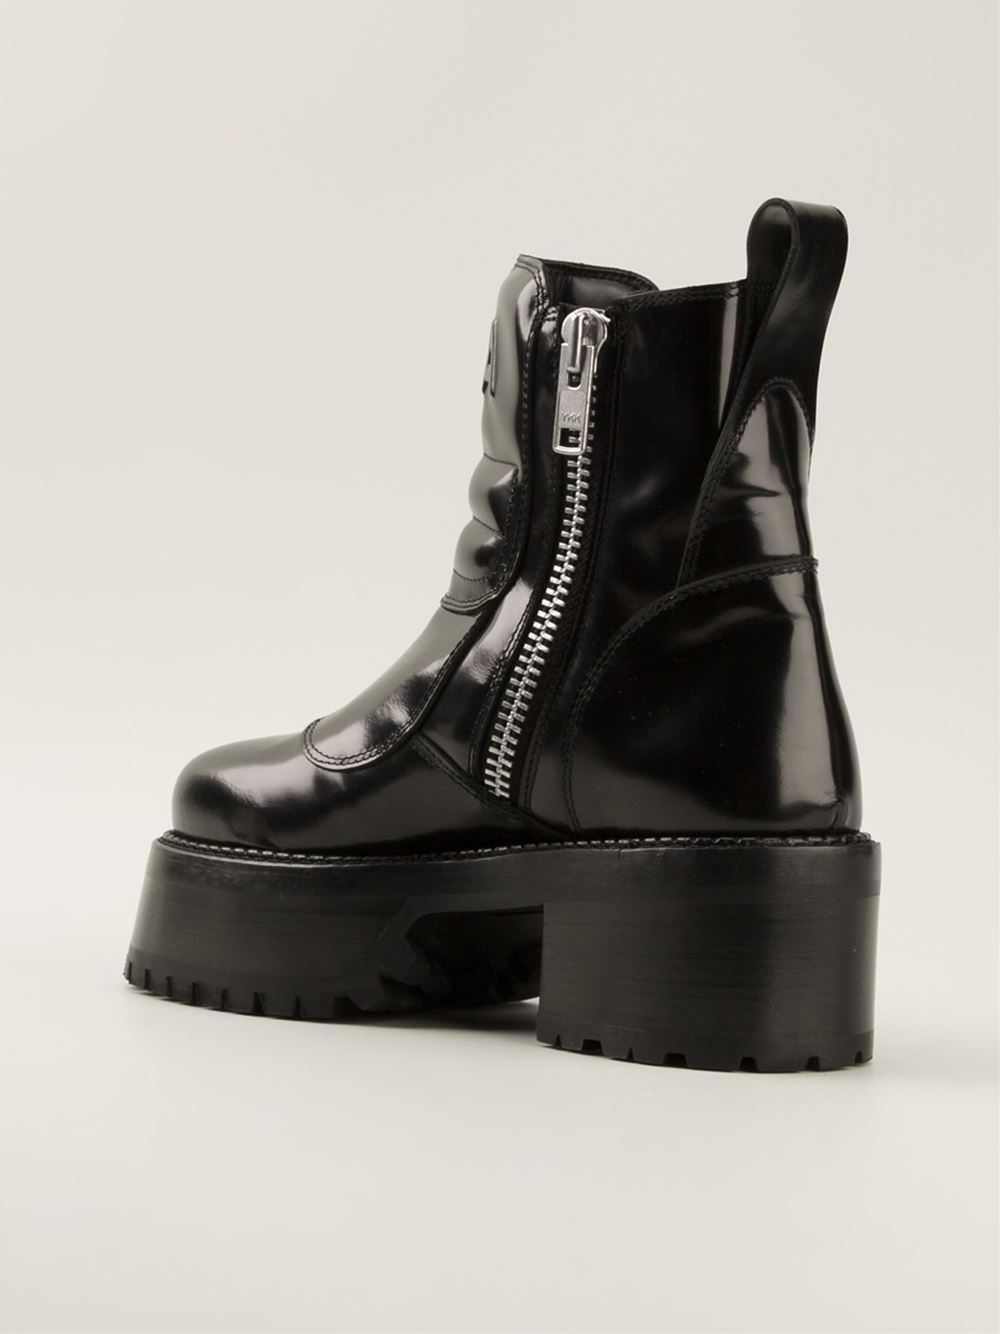 Hood by air Platform Boots in Black | Lyst